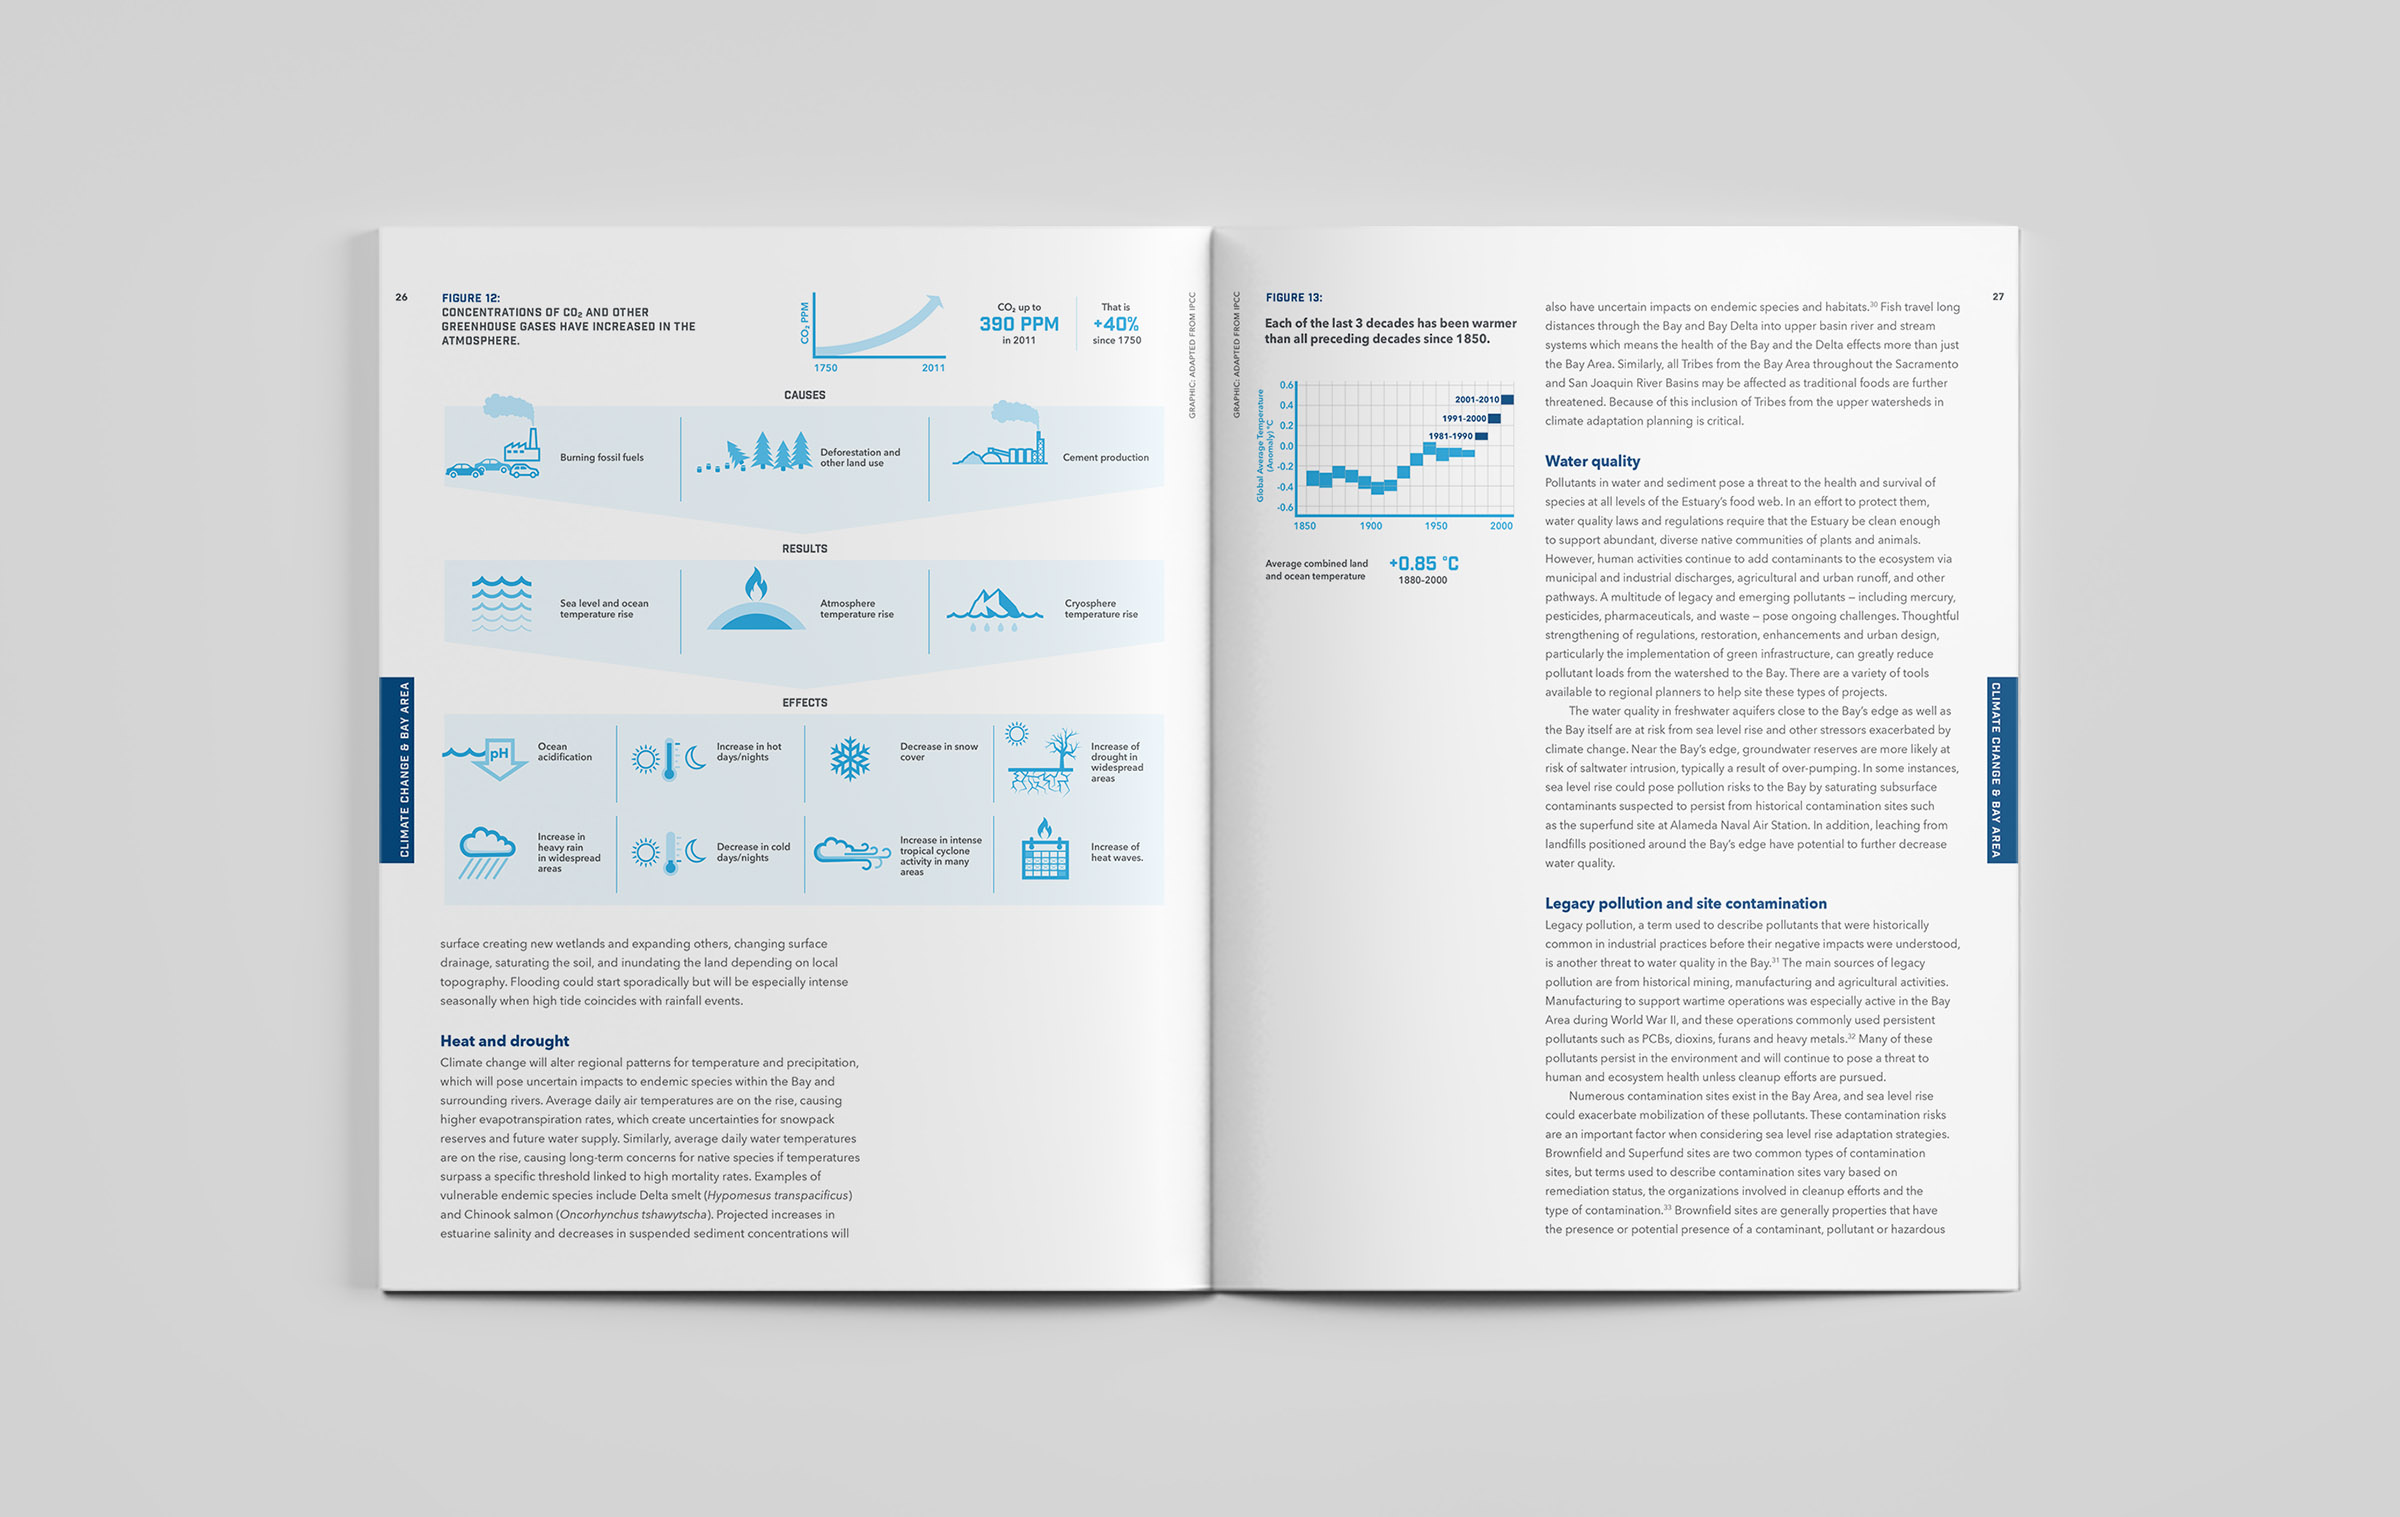 resilient-by-design-briefing-book-spread-1